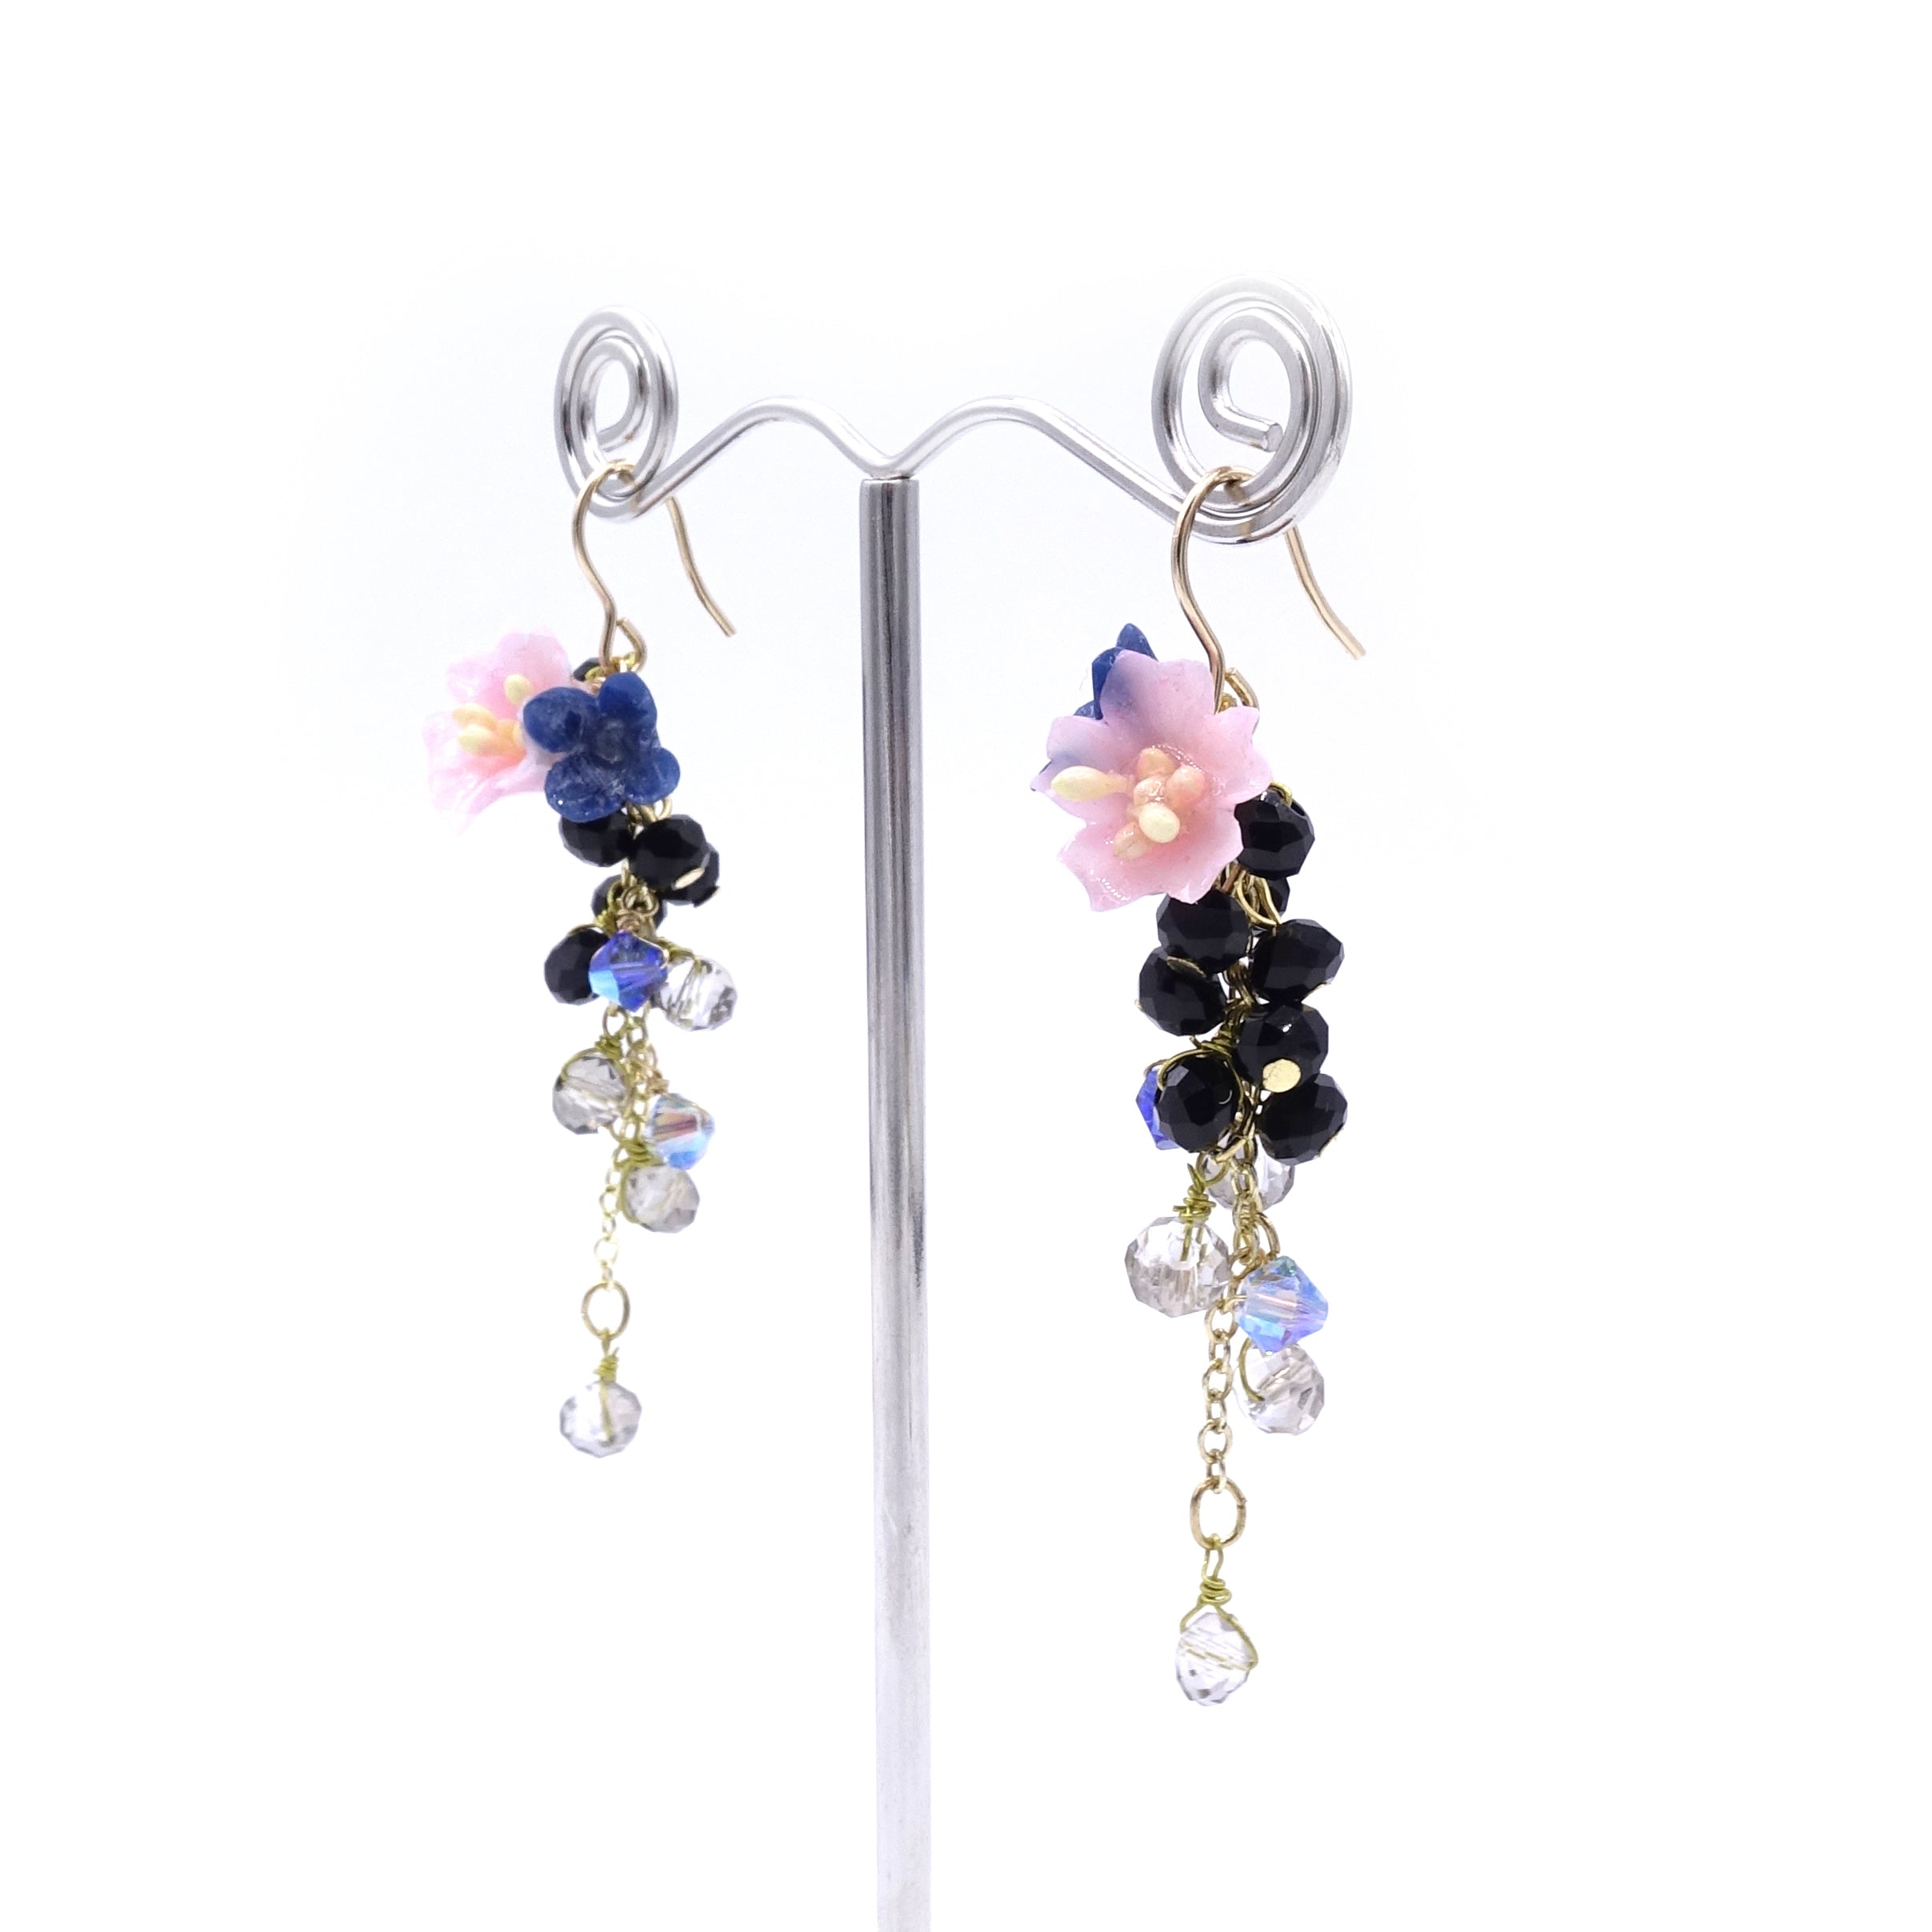 SAKURA COLLECTION Night-Sakura-Rain Floral Crystal Earrings - Pink